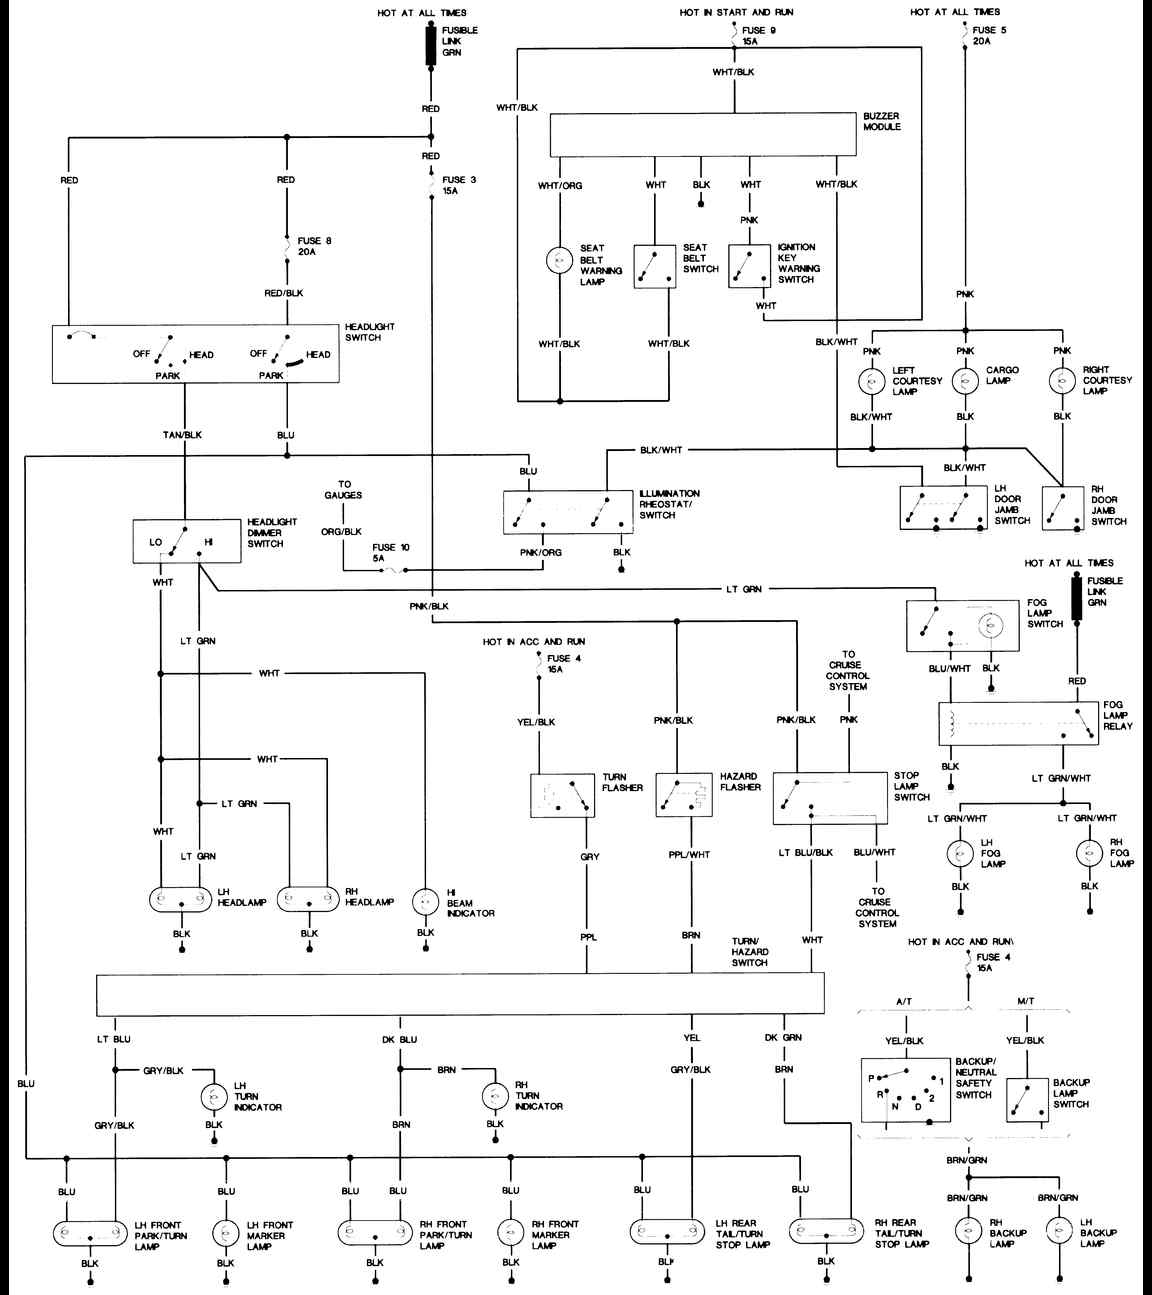 jeep wrangler wiring diagram image wiring 1988 wrangler wiring diagram 1988 auto wiring diagram schematic on 88 jeep wrangler wiring diagram